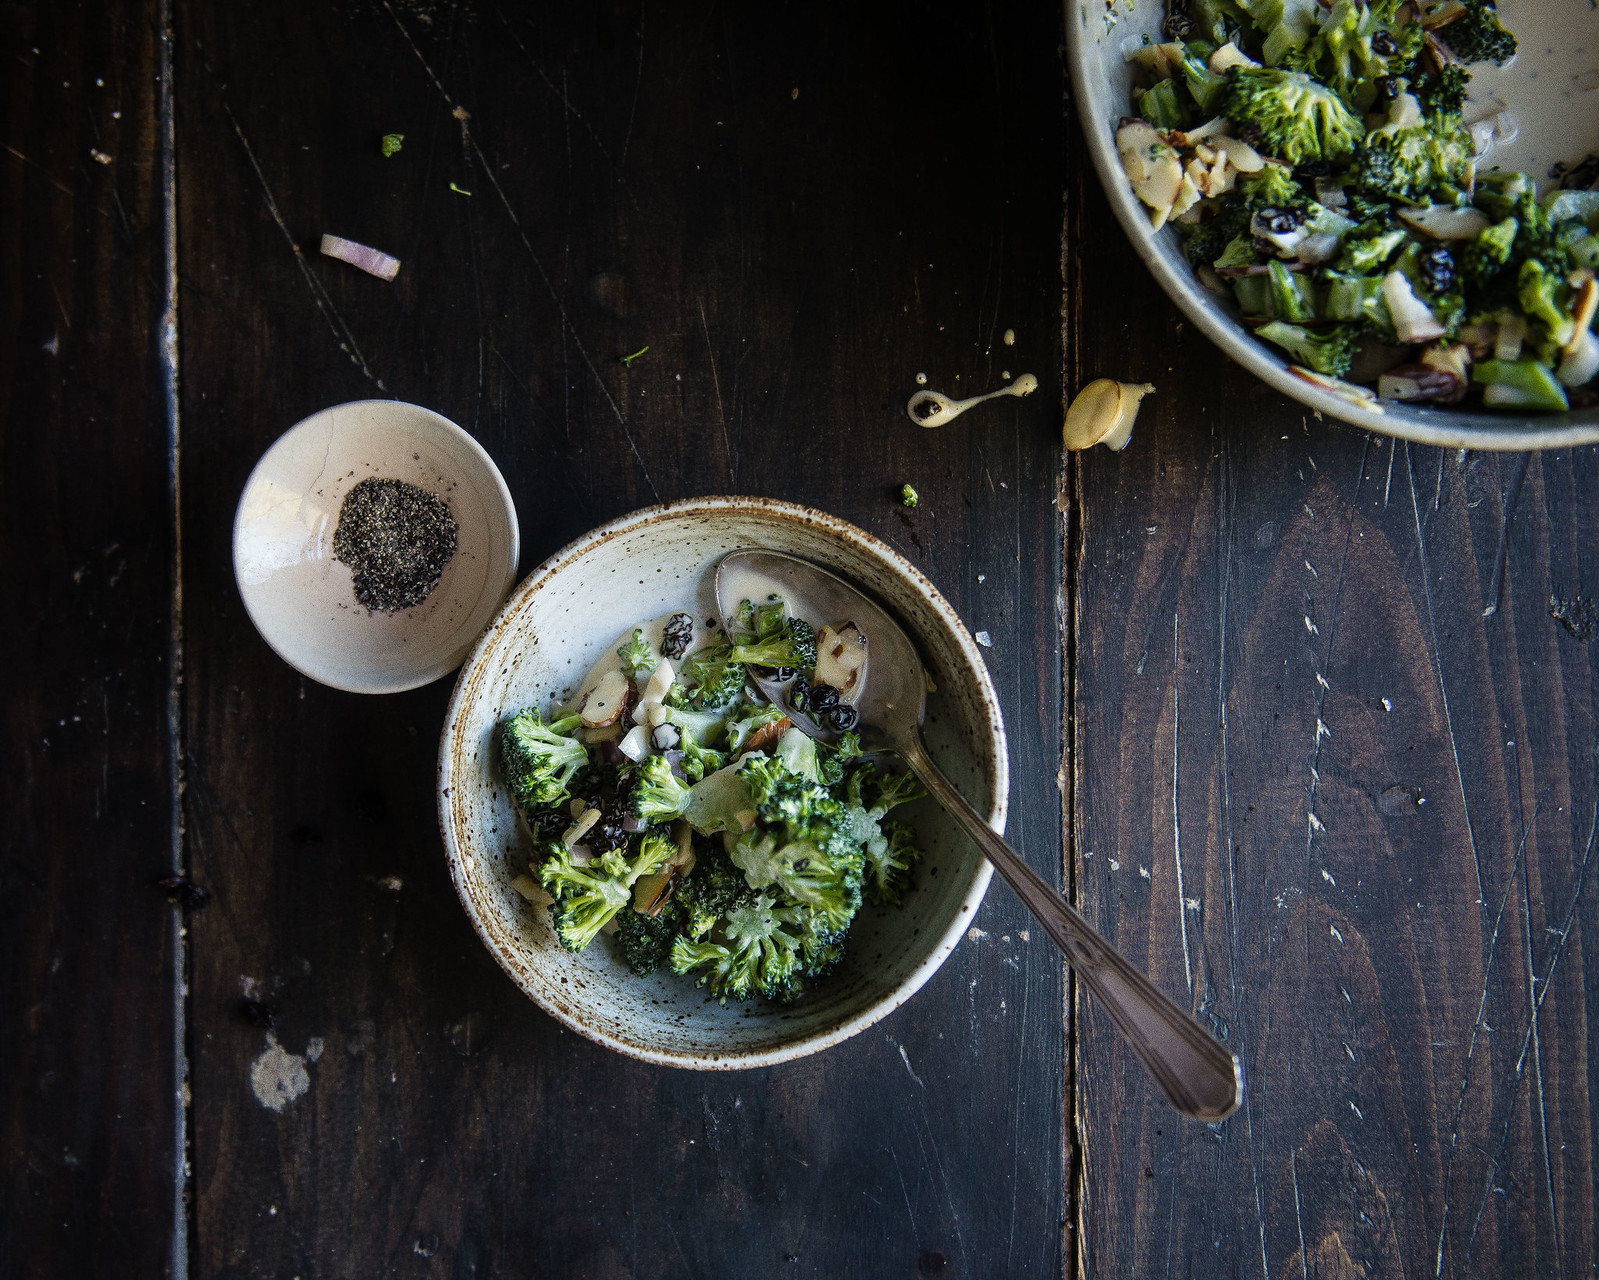 creamy broccoli salad with almonds & raisins